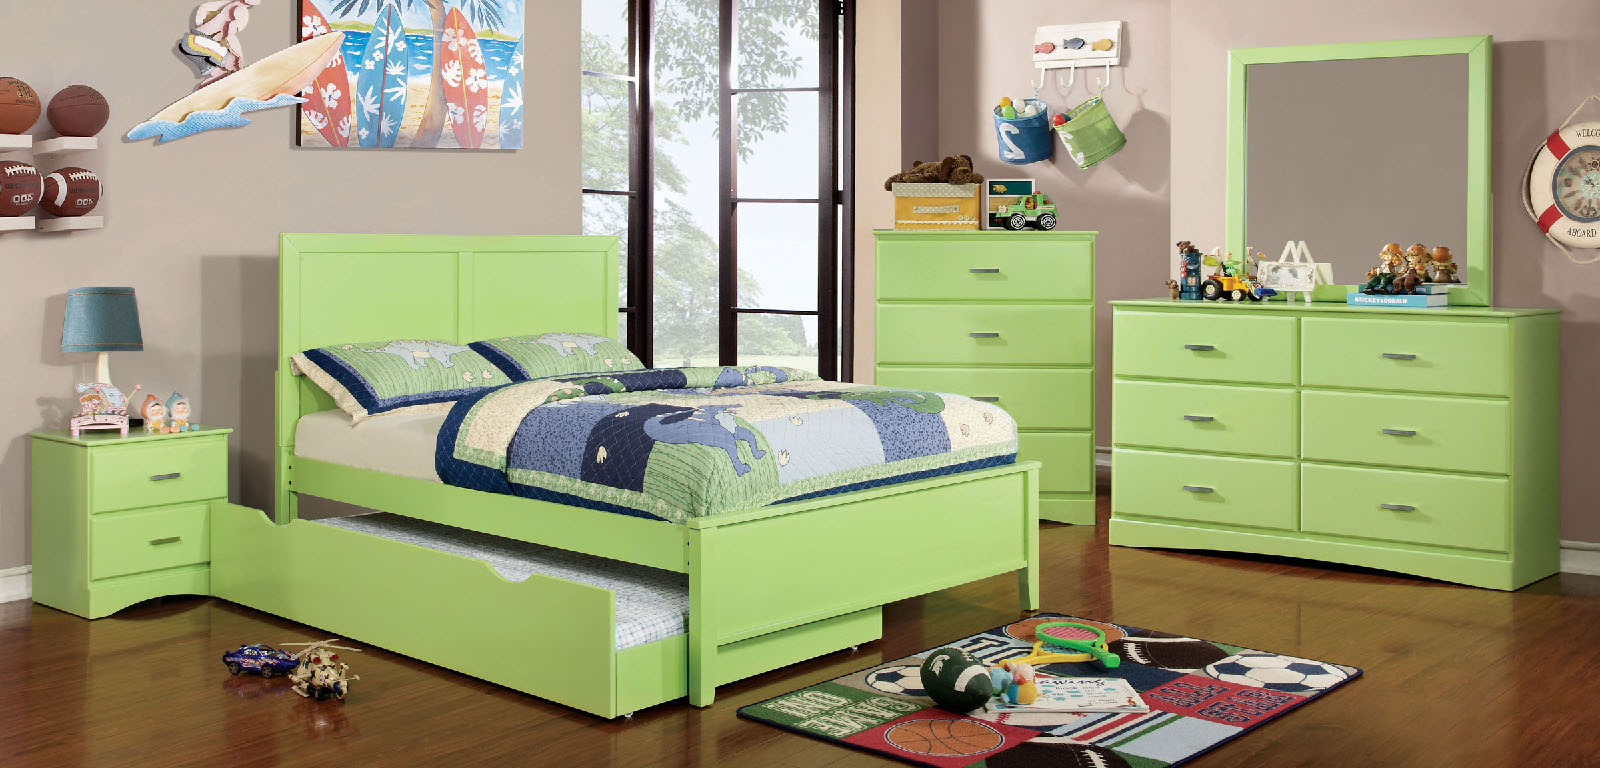 Prismo lime green wood bedroom set las vegas furniture for Lime green bedroom furniture